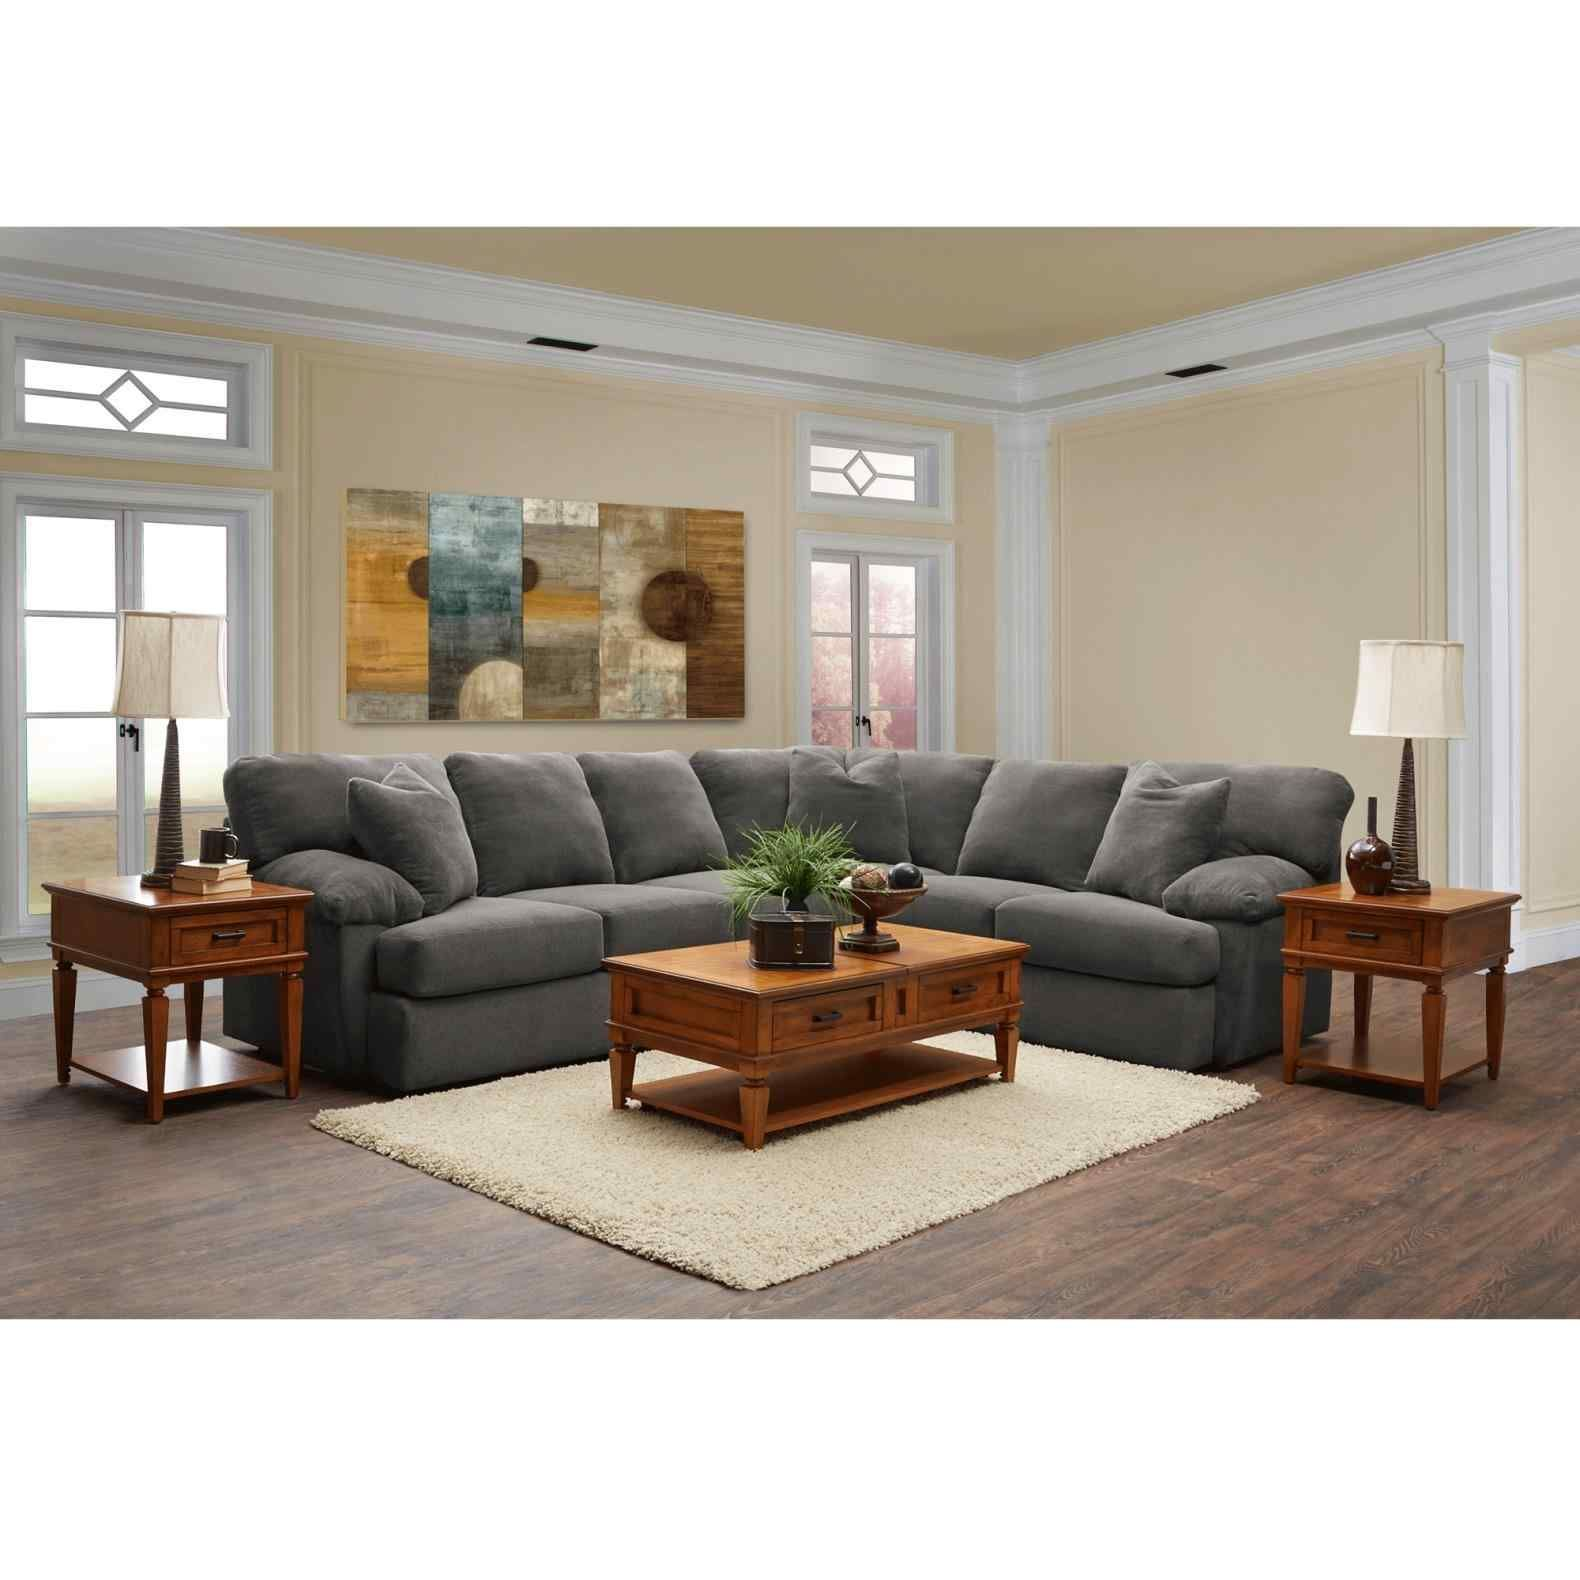 Ealing Sectional Sofas Free Shipping With Additional What Is A Sofa Cleanupfloridacom